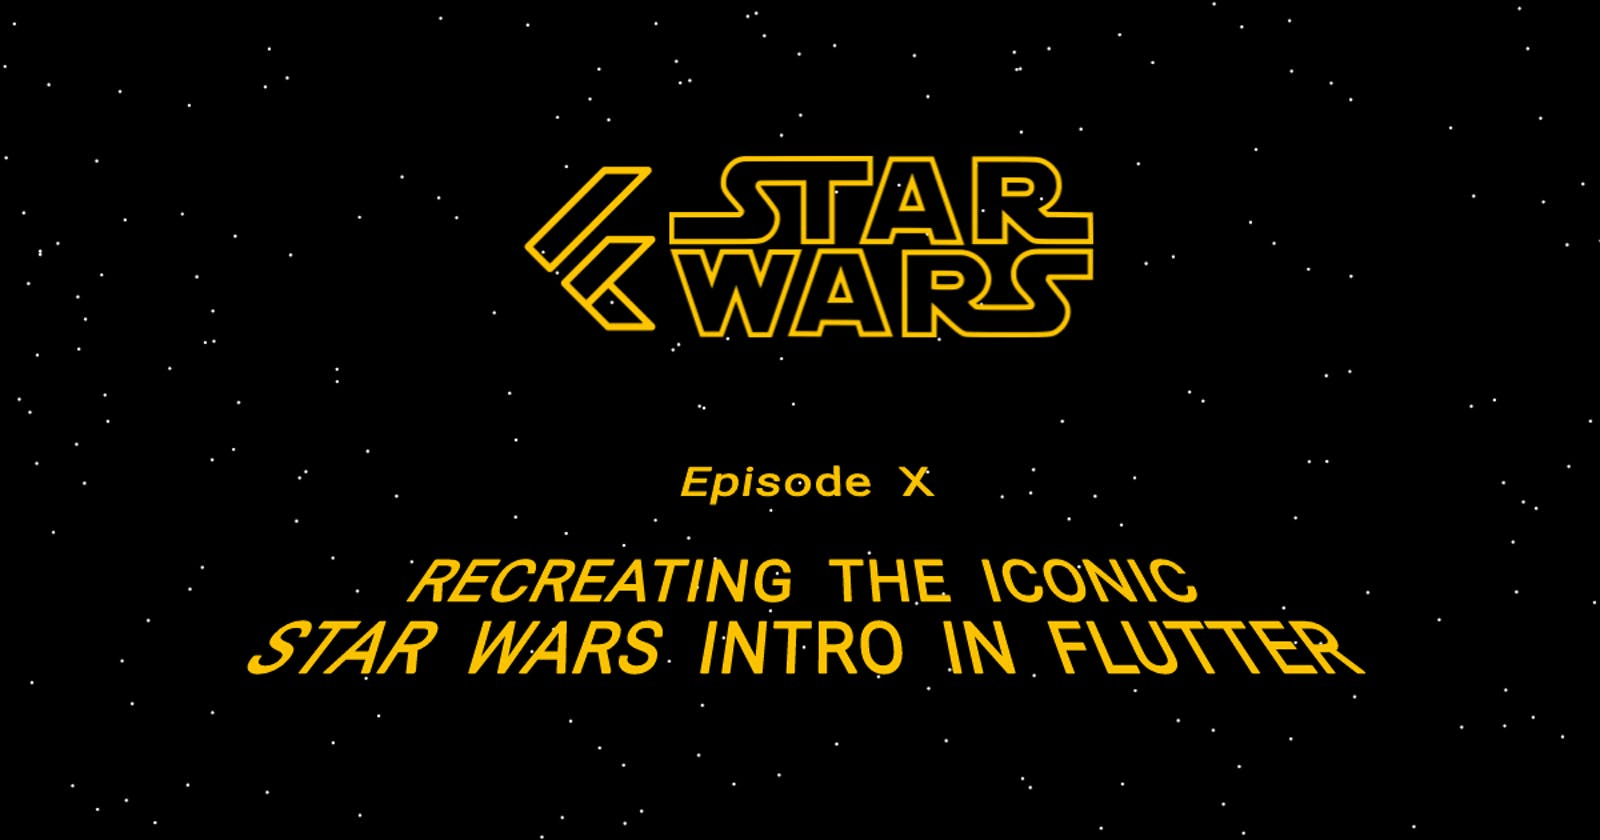 Recreating the iconic Star Wars Intro in Flutter